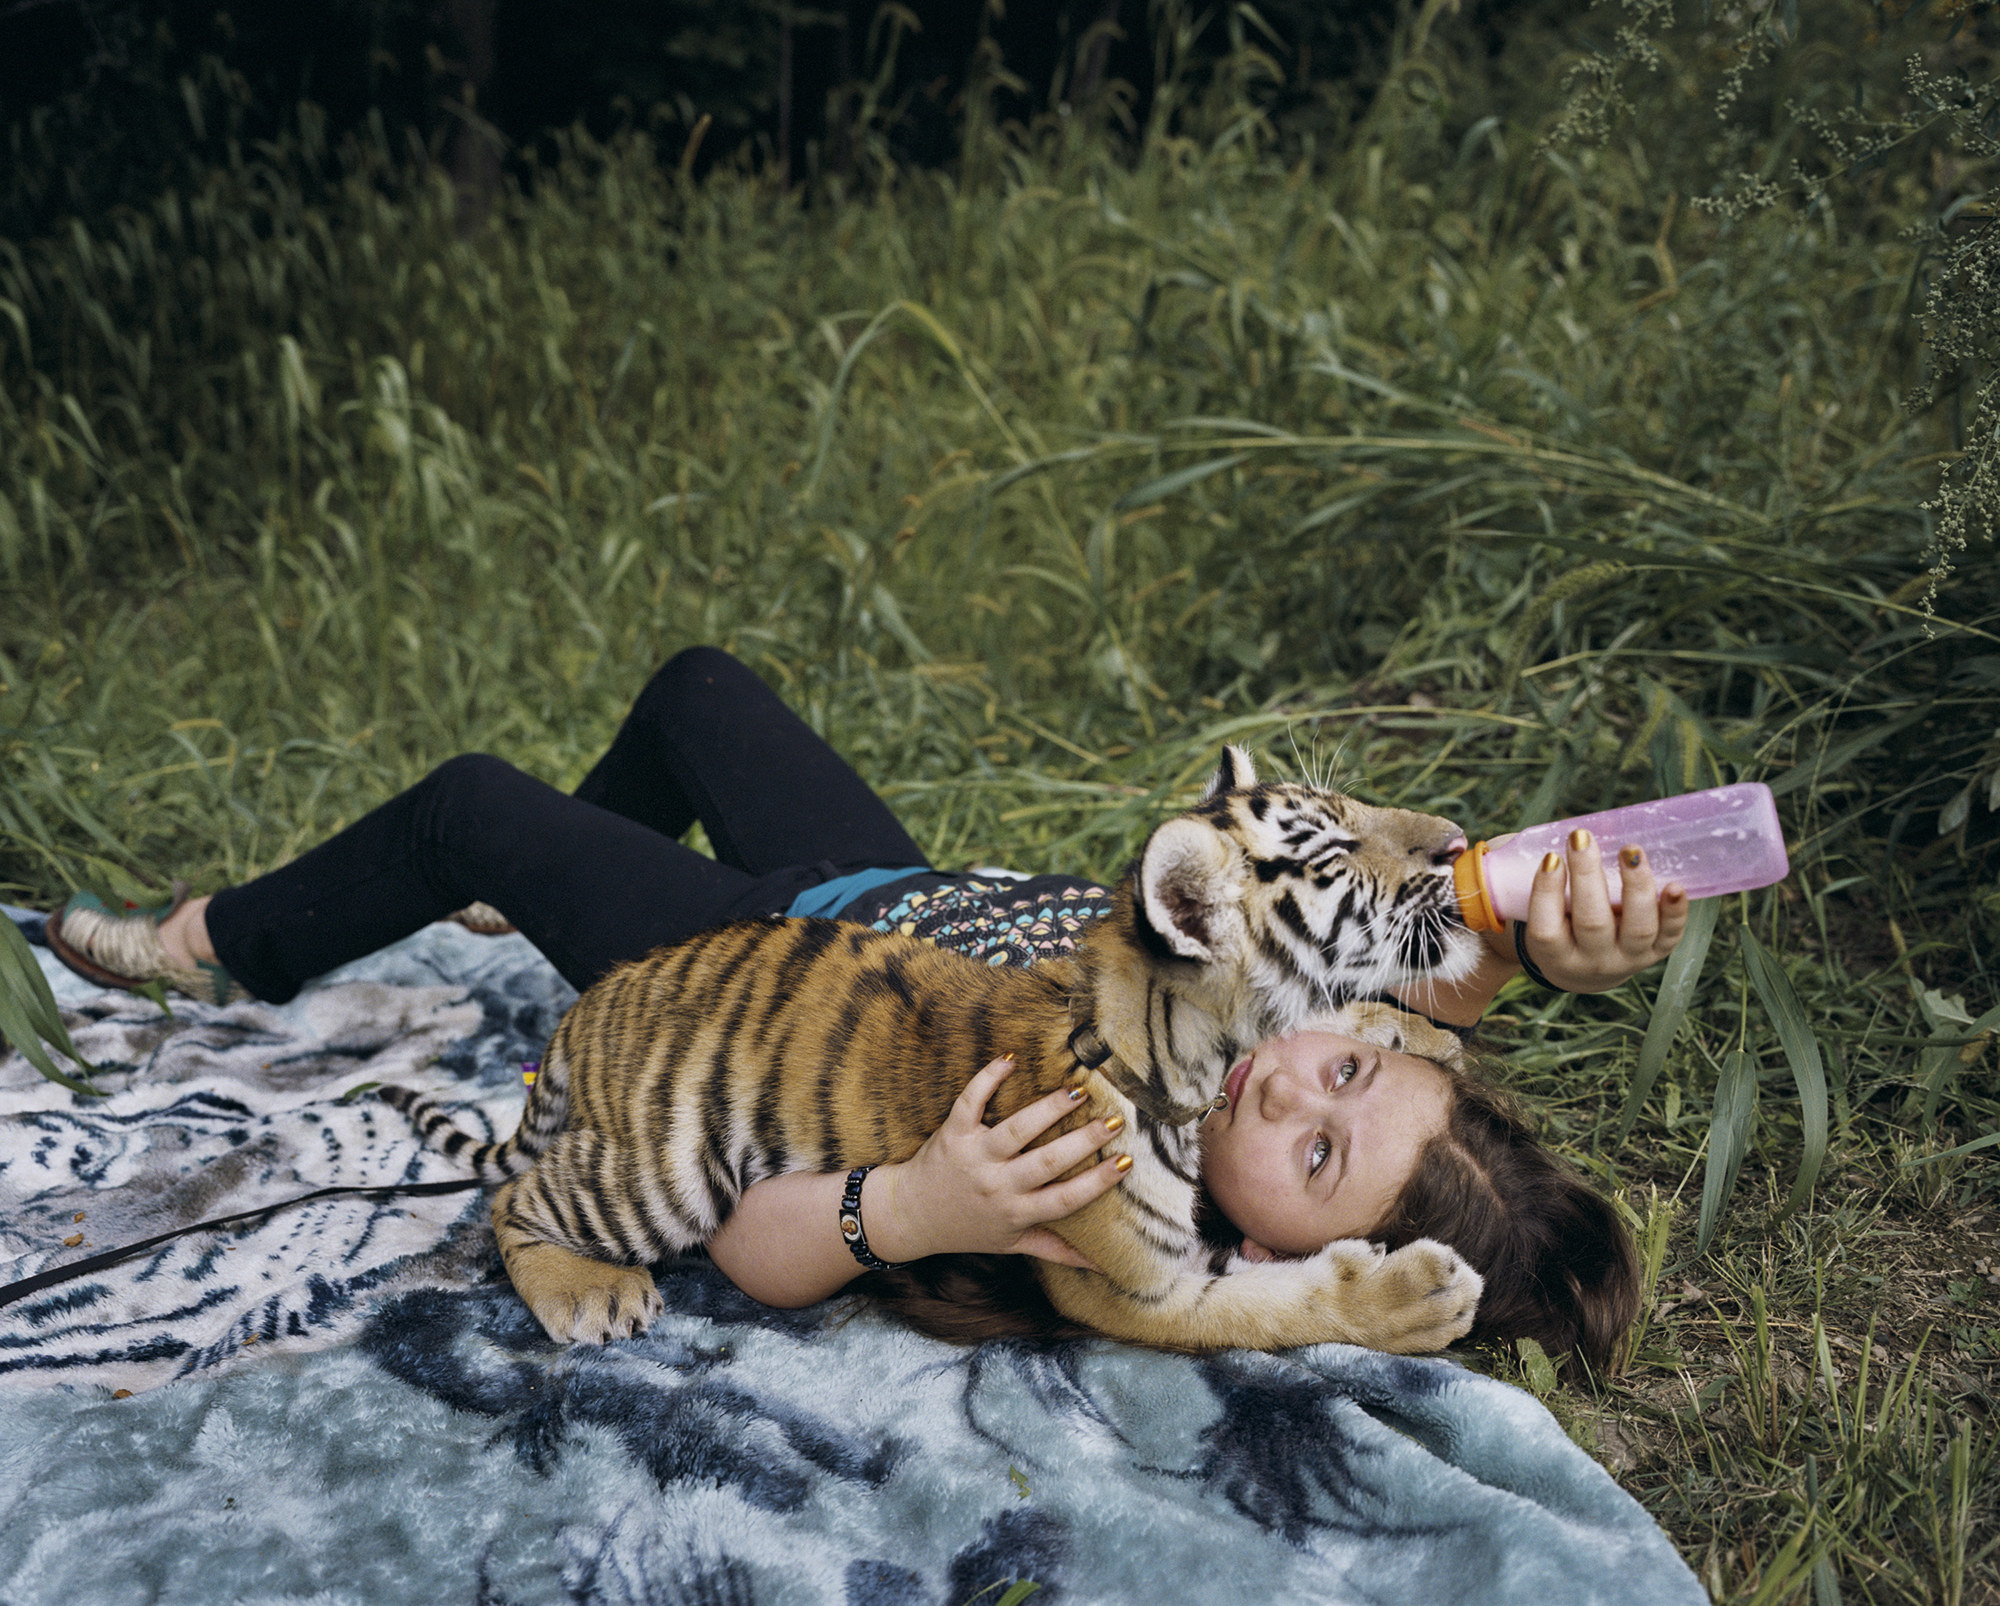 Amelia and a baby tiger lie on a blanket as she gives the animal a drink from a baby bottle